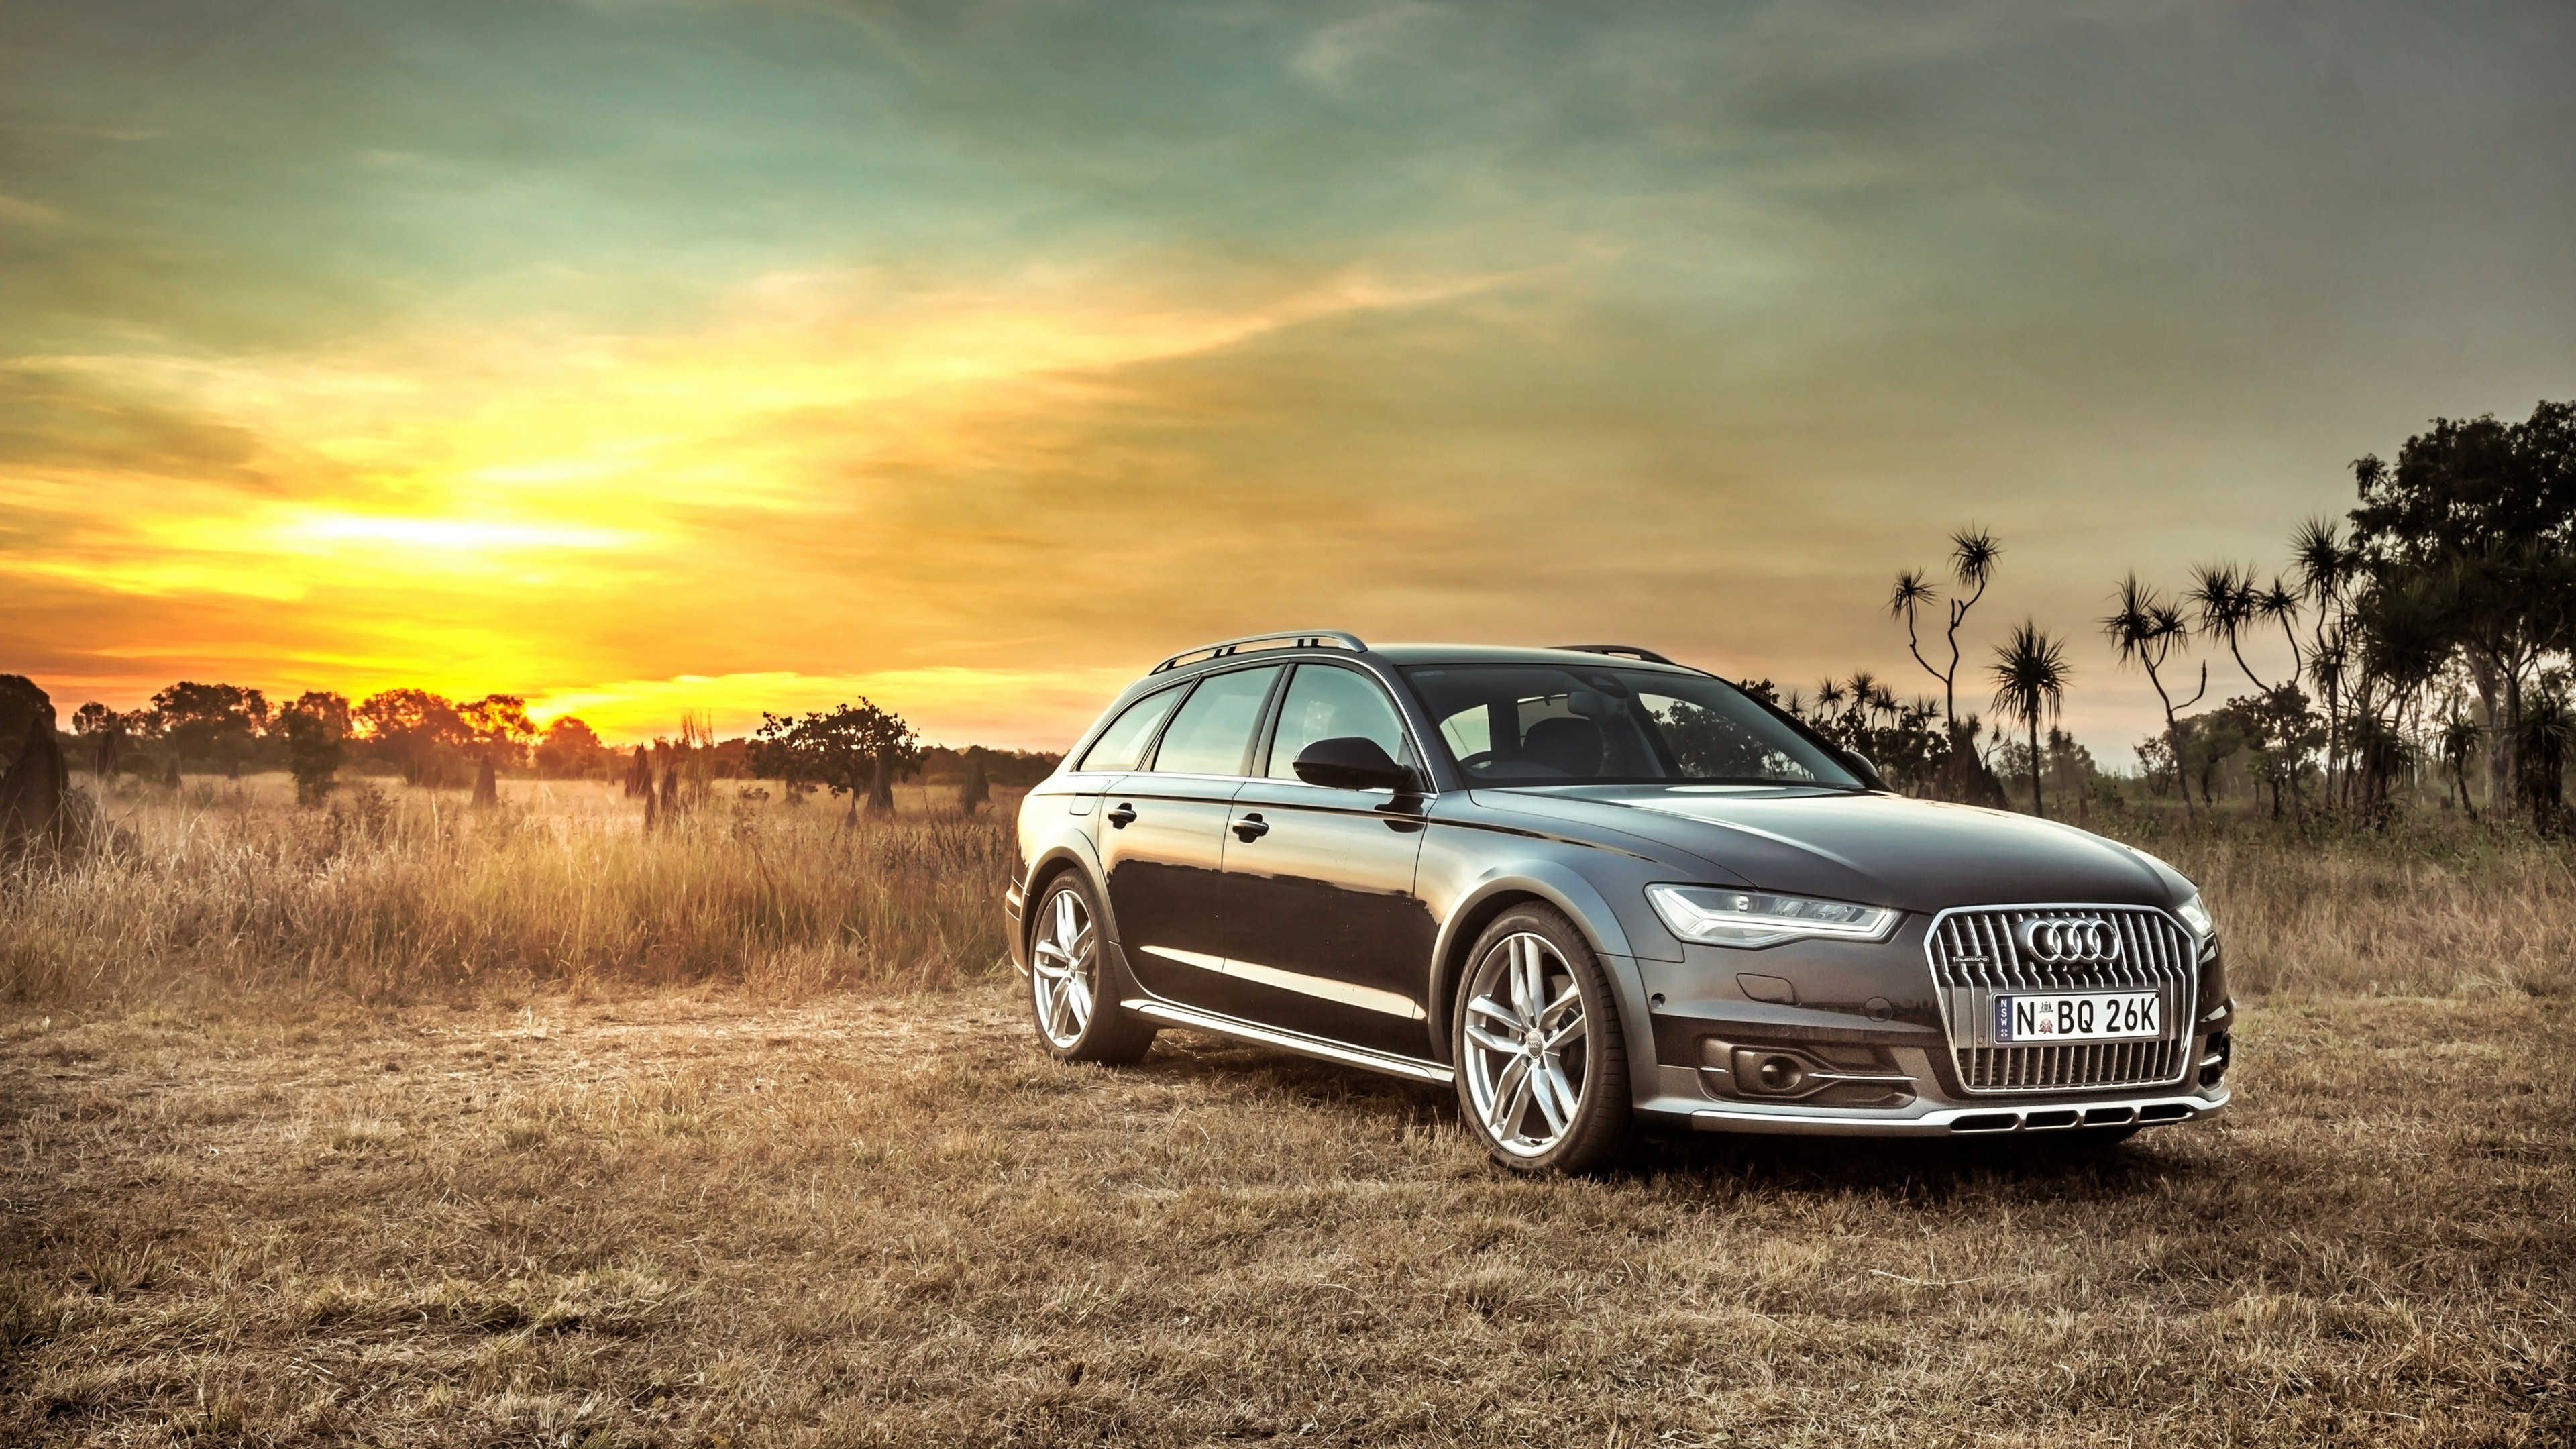 Audi Car Images Wallpapers Wallpapers All Superior Audi Car Images Wallpapers Backgrounds Wallpapersplanet Net